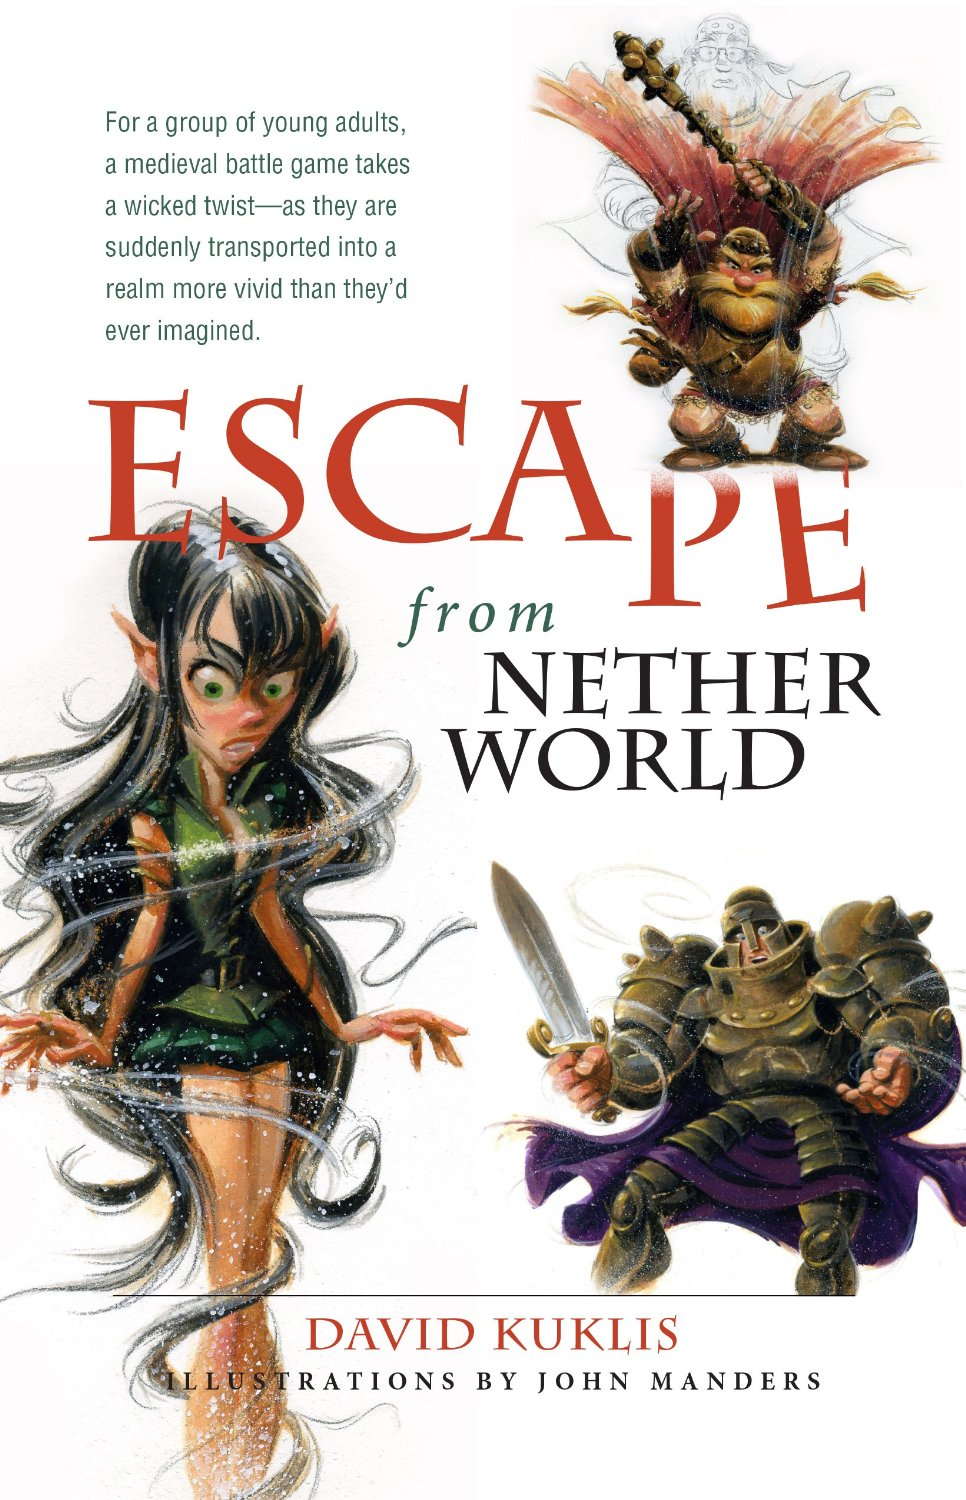 Book review by Wendy Strain on Escape from Netherworld by David Kuklis